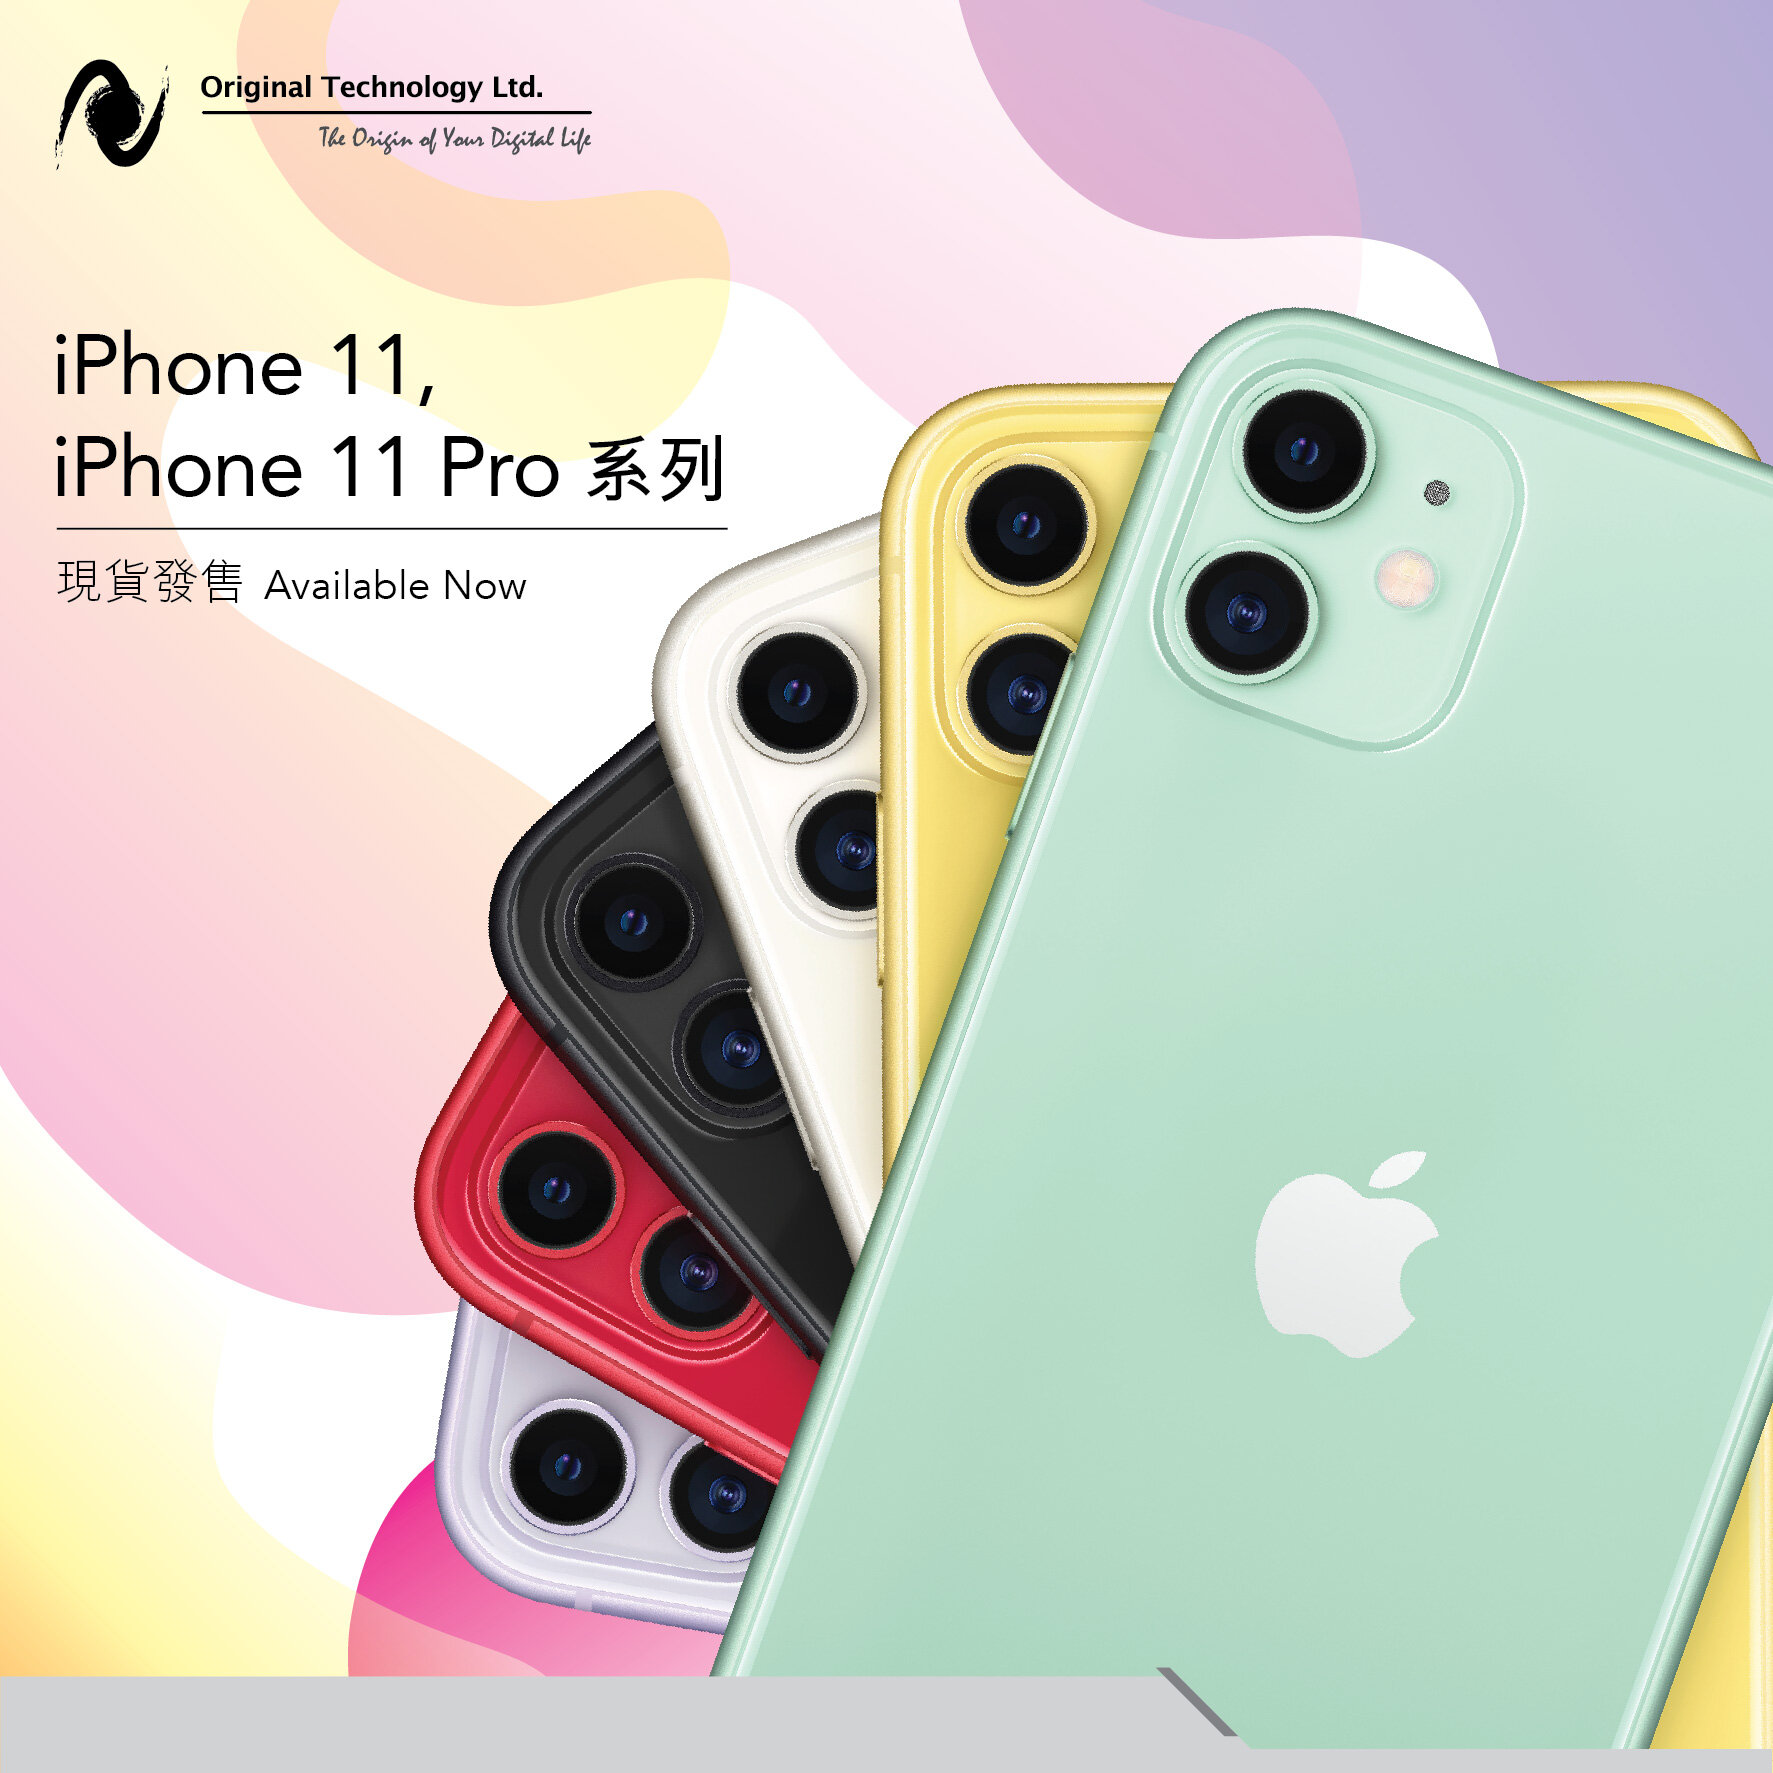 NA02_iPhone 11 Available Now_FB_02-01.jpg